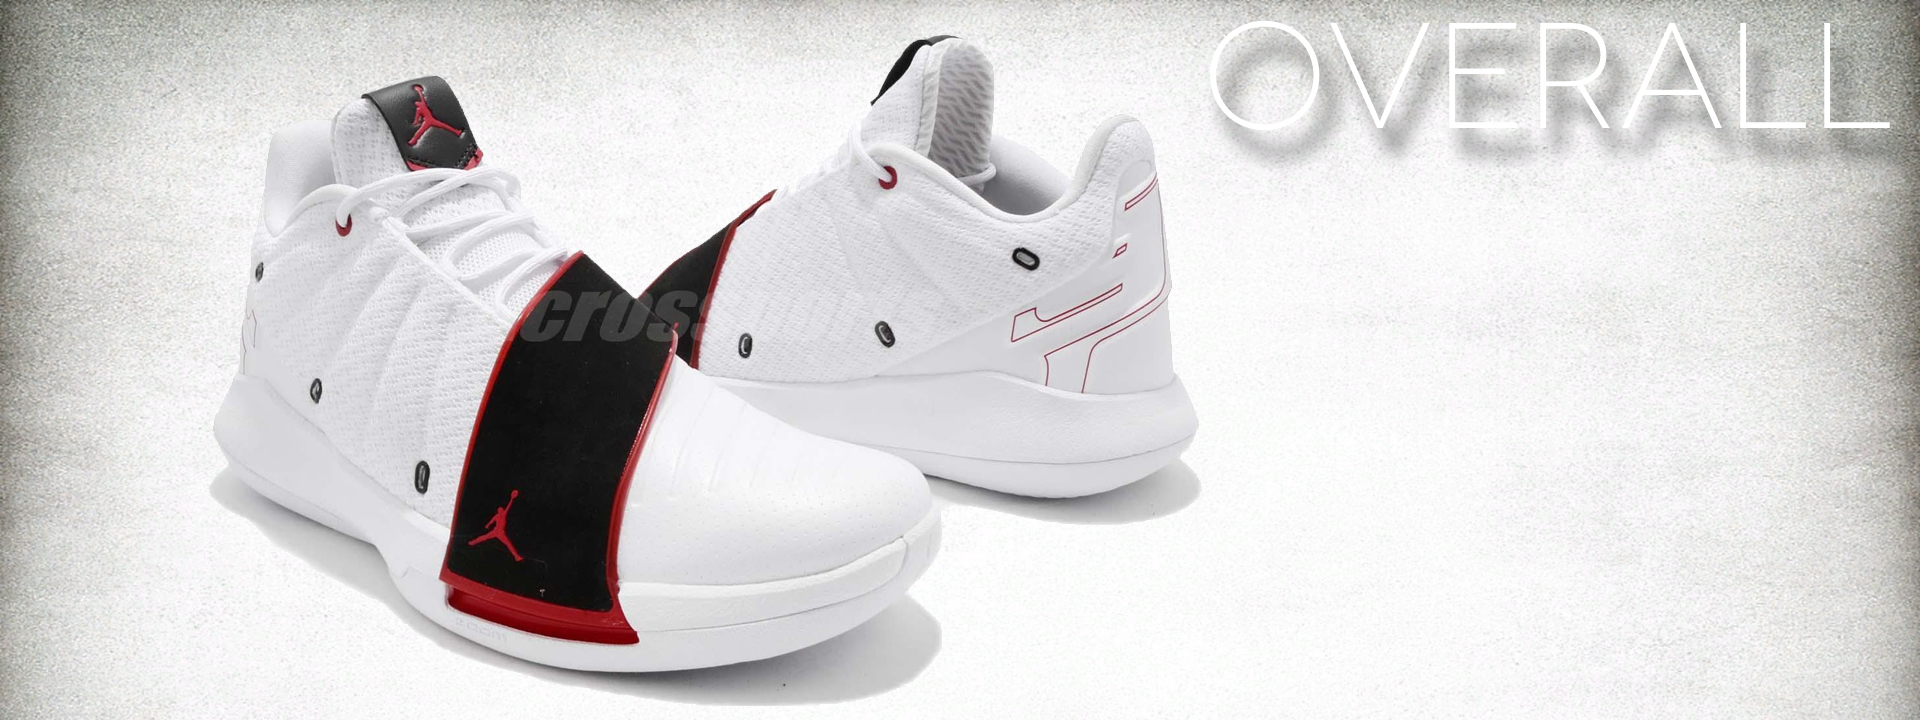 Jordan CP3 11 Performance Review overall